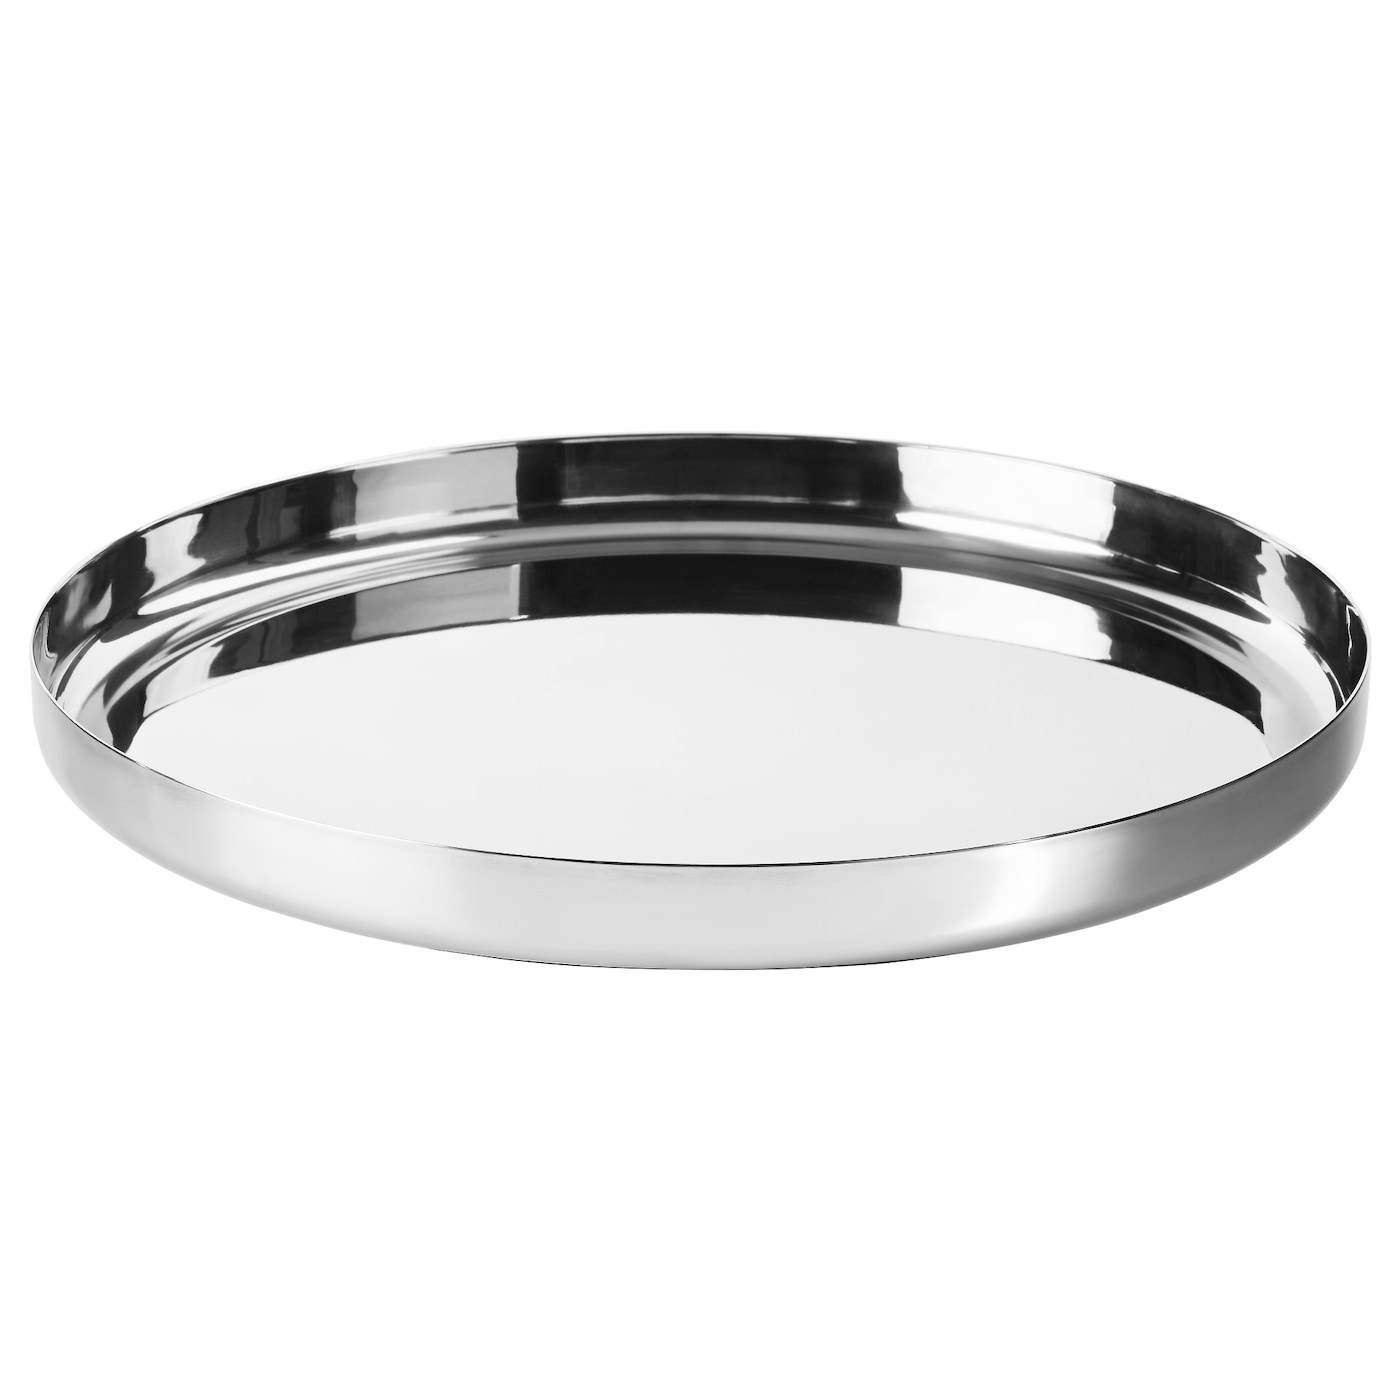 Stockholm 2017 tray stainless steel 40 cm ikea for Miroir rond ikea